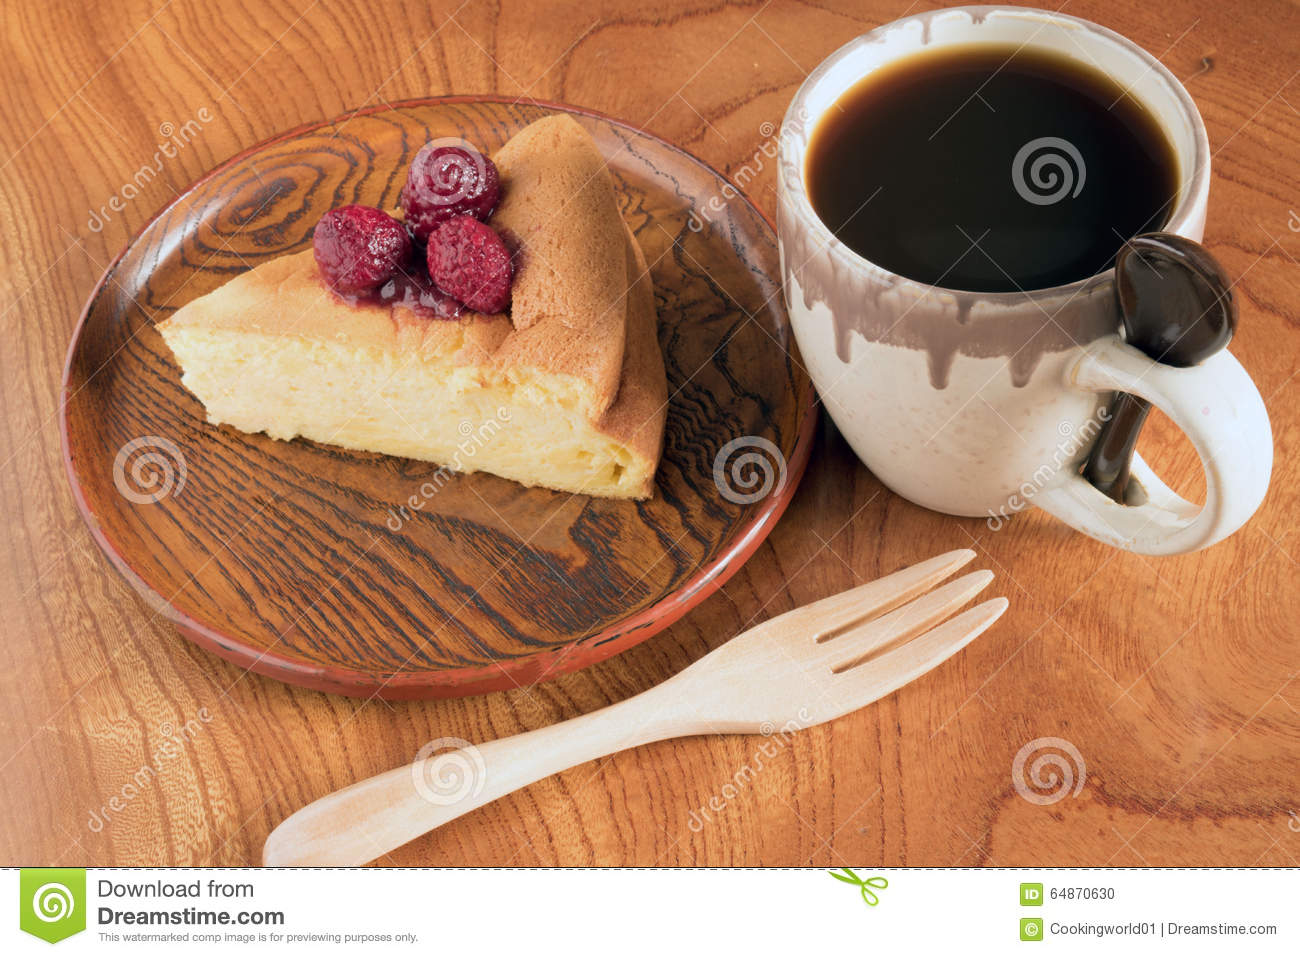 Japanese Cotton Cheese Cake With Raspberry Sauce Stock Photo Image